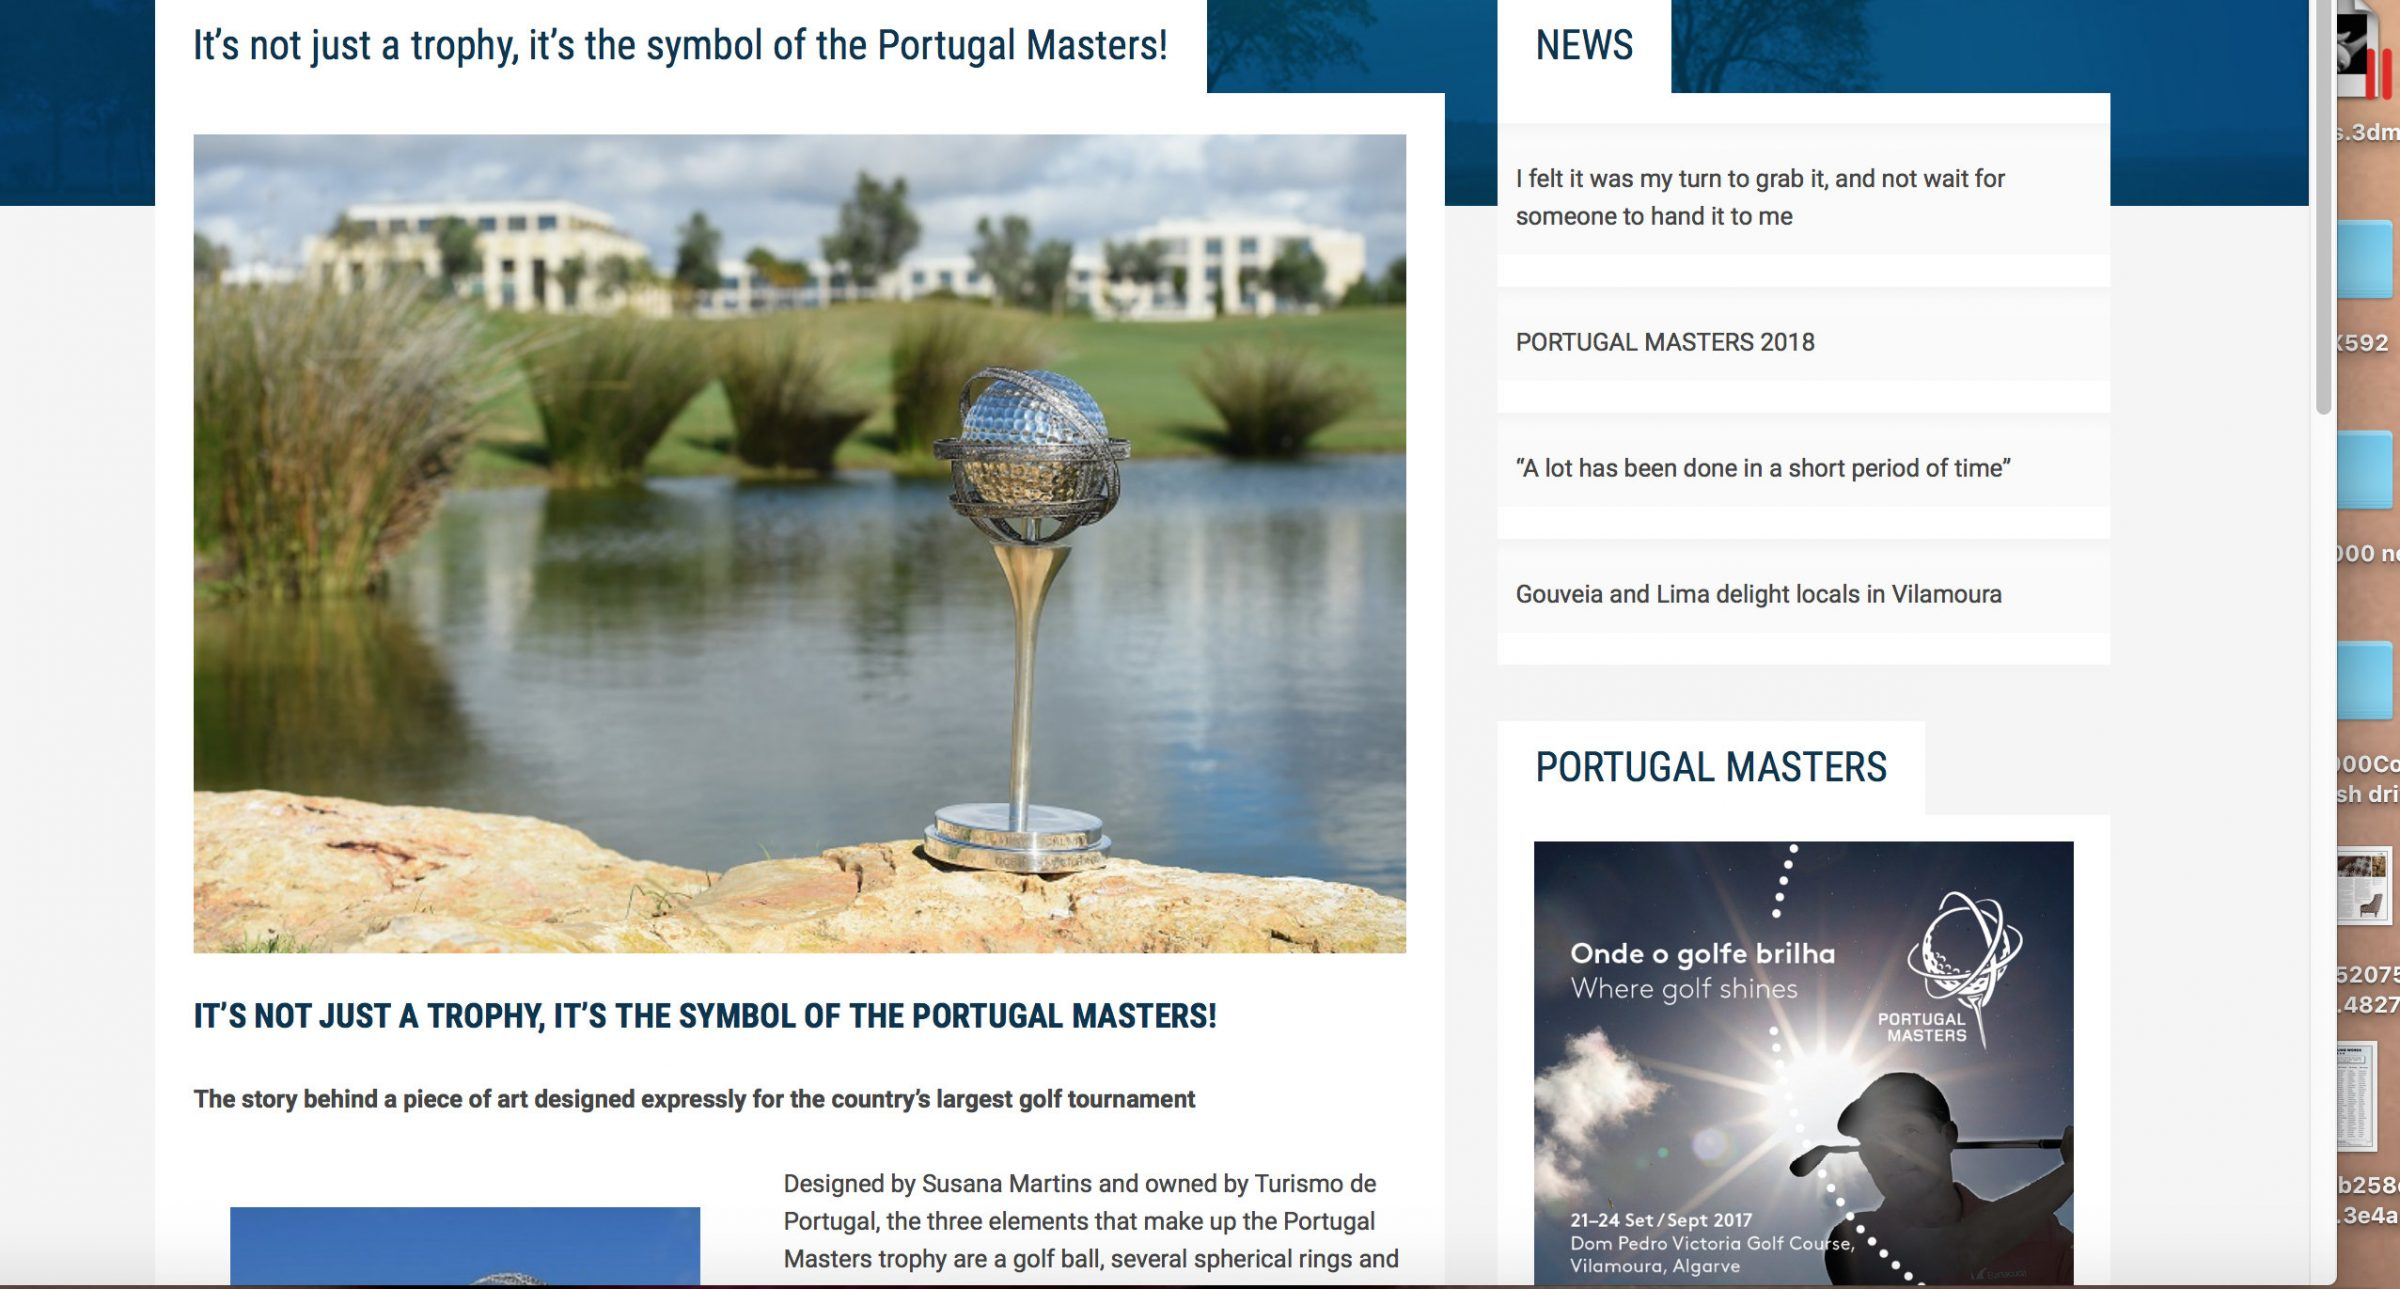 Portugal Masters Trophy - the story behind the piece of Art Designed by Susana Martins